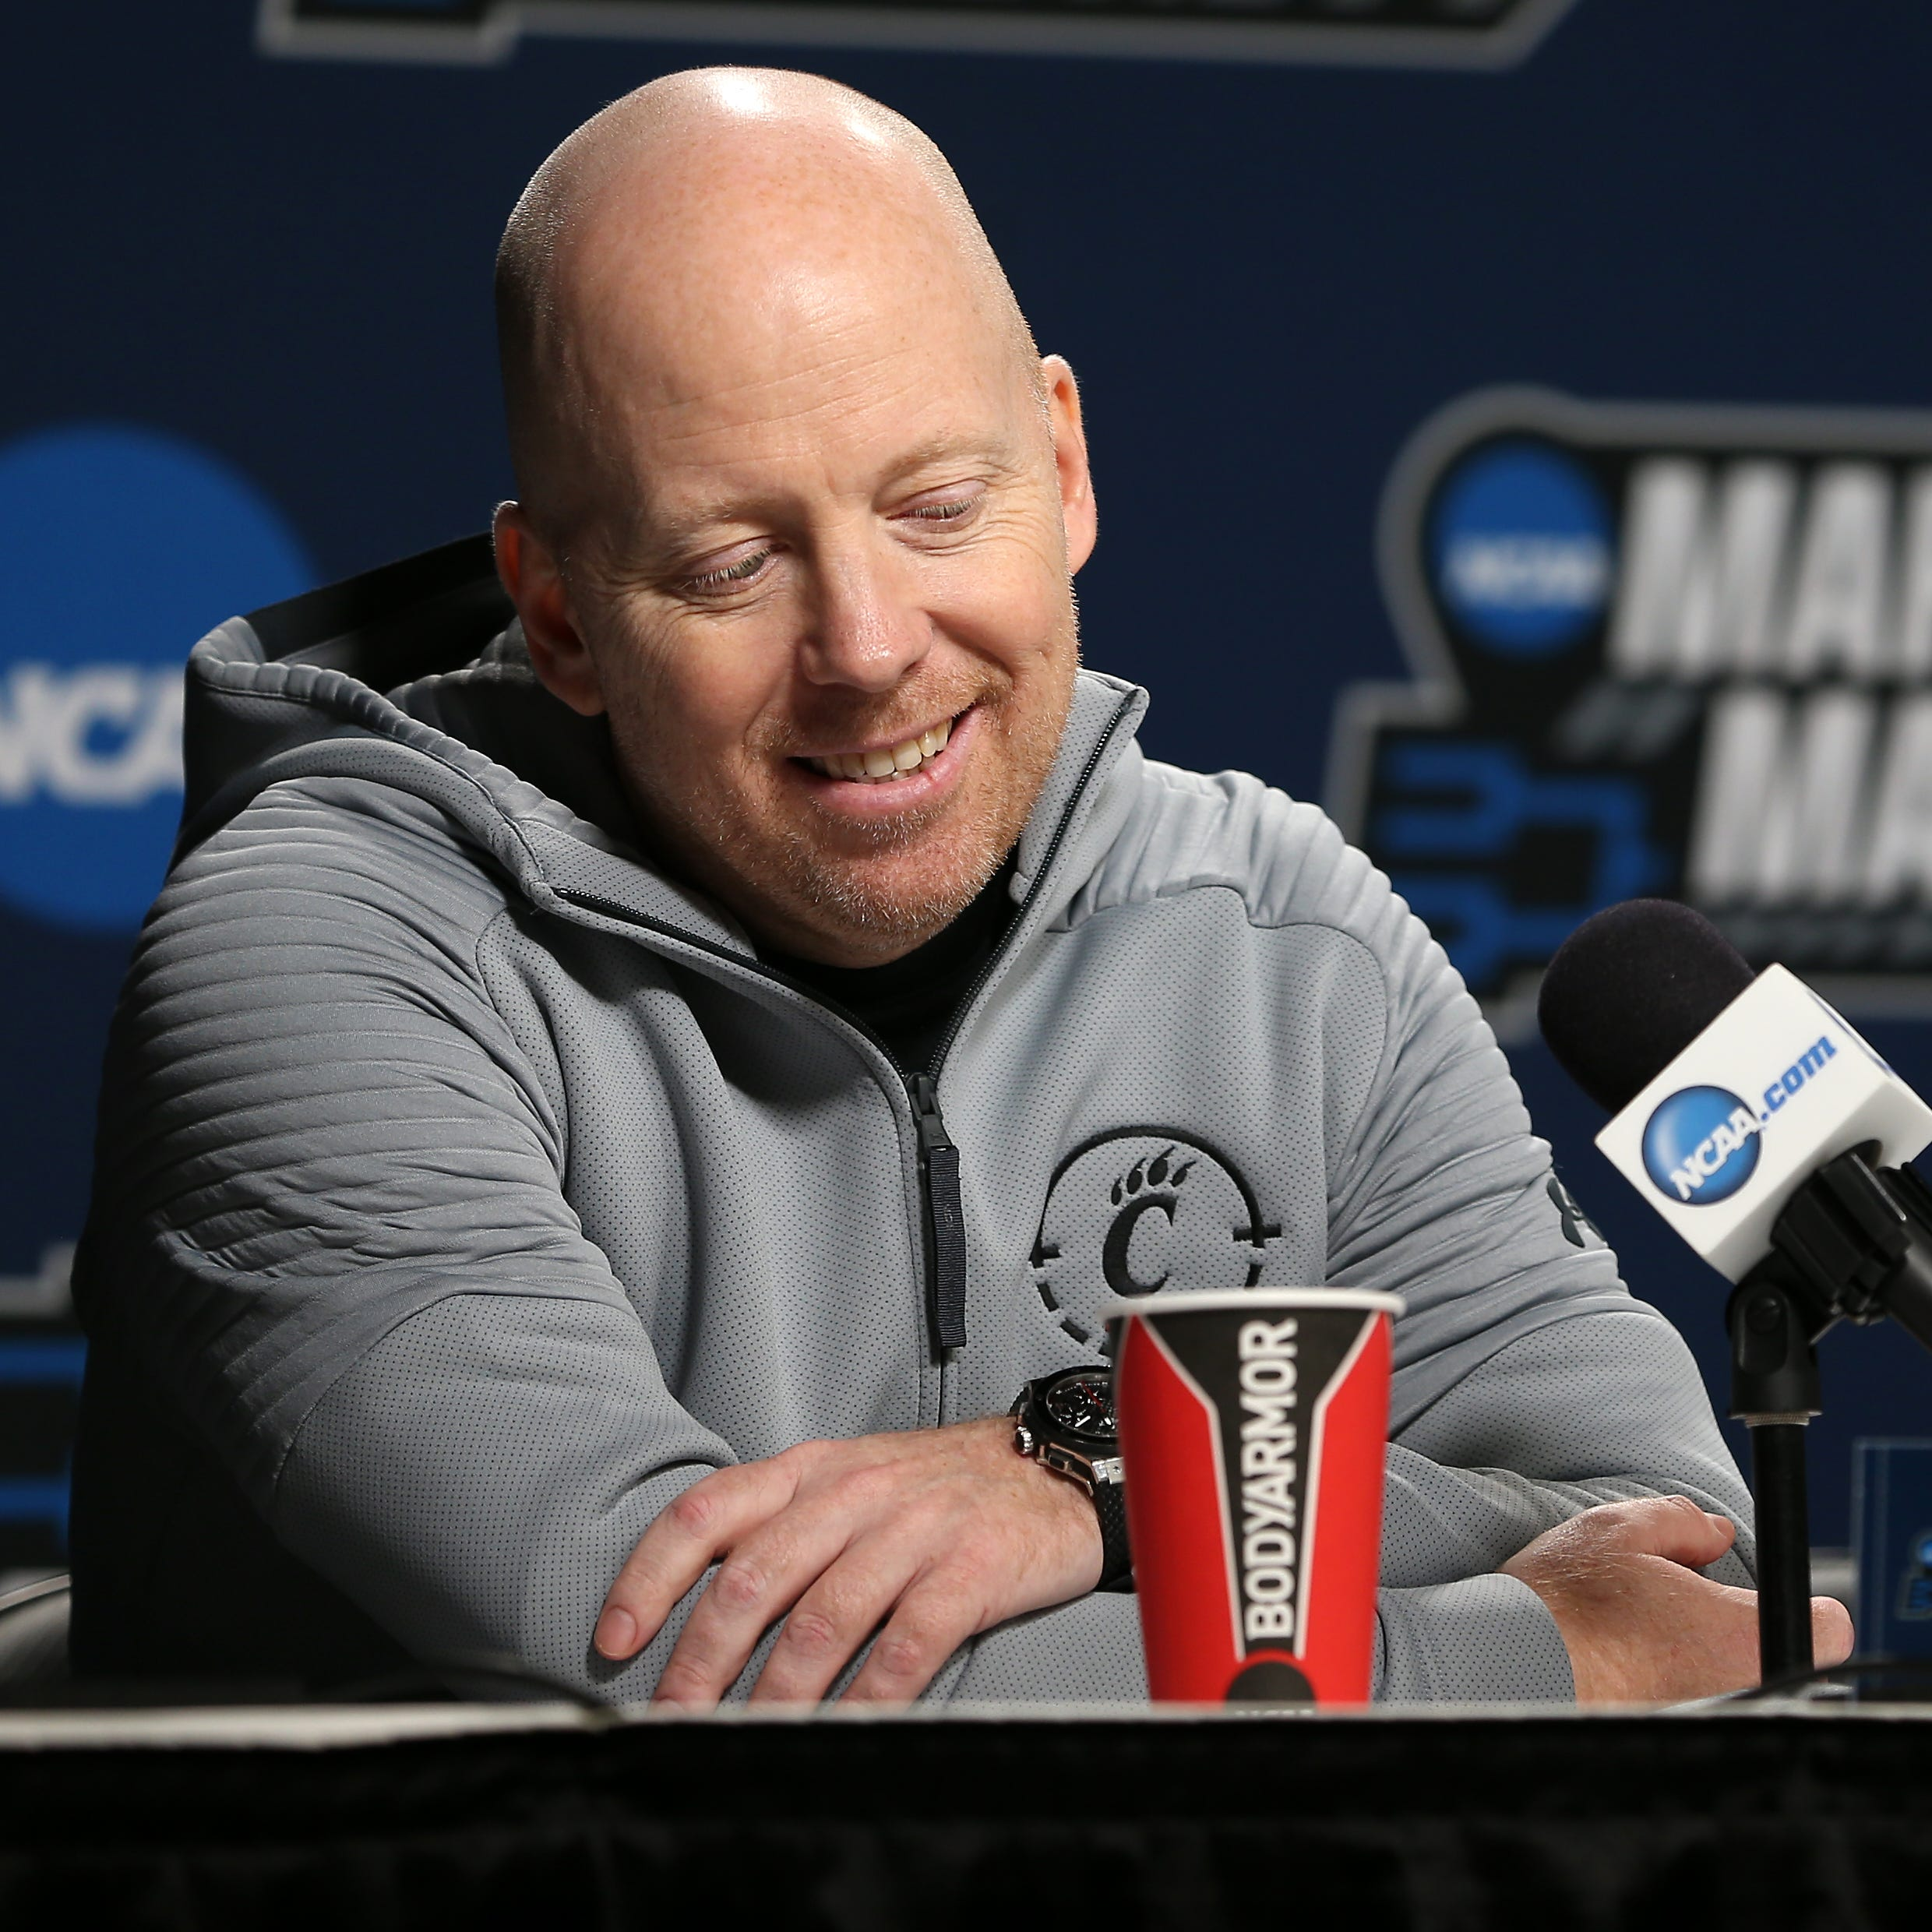 Mick Cronin announced as UCLA's new head coach after 13 seasons with Cincinnati Bearcats